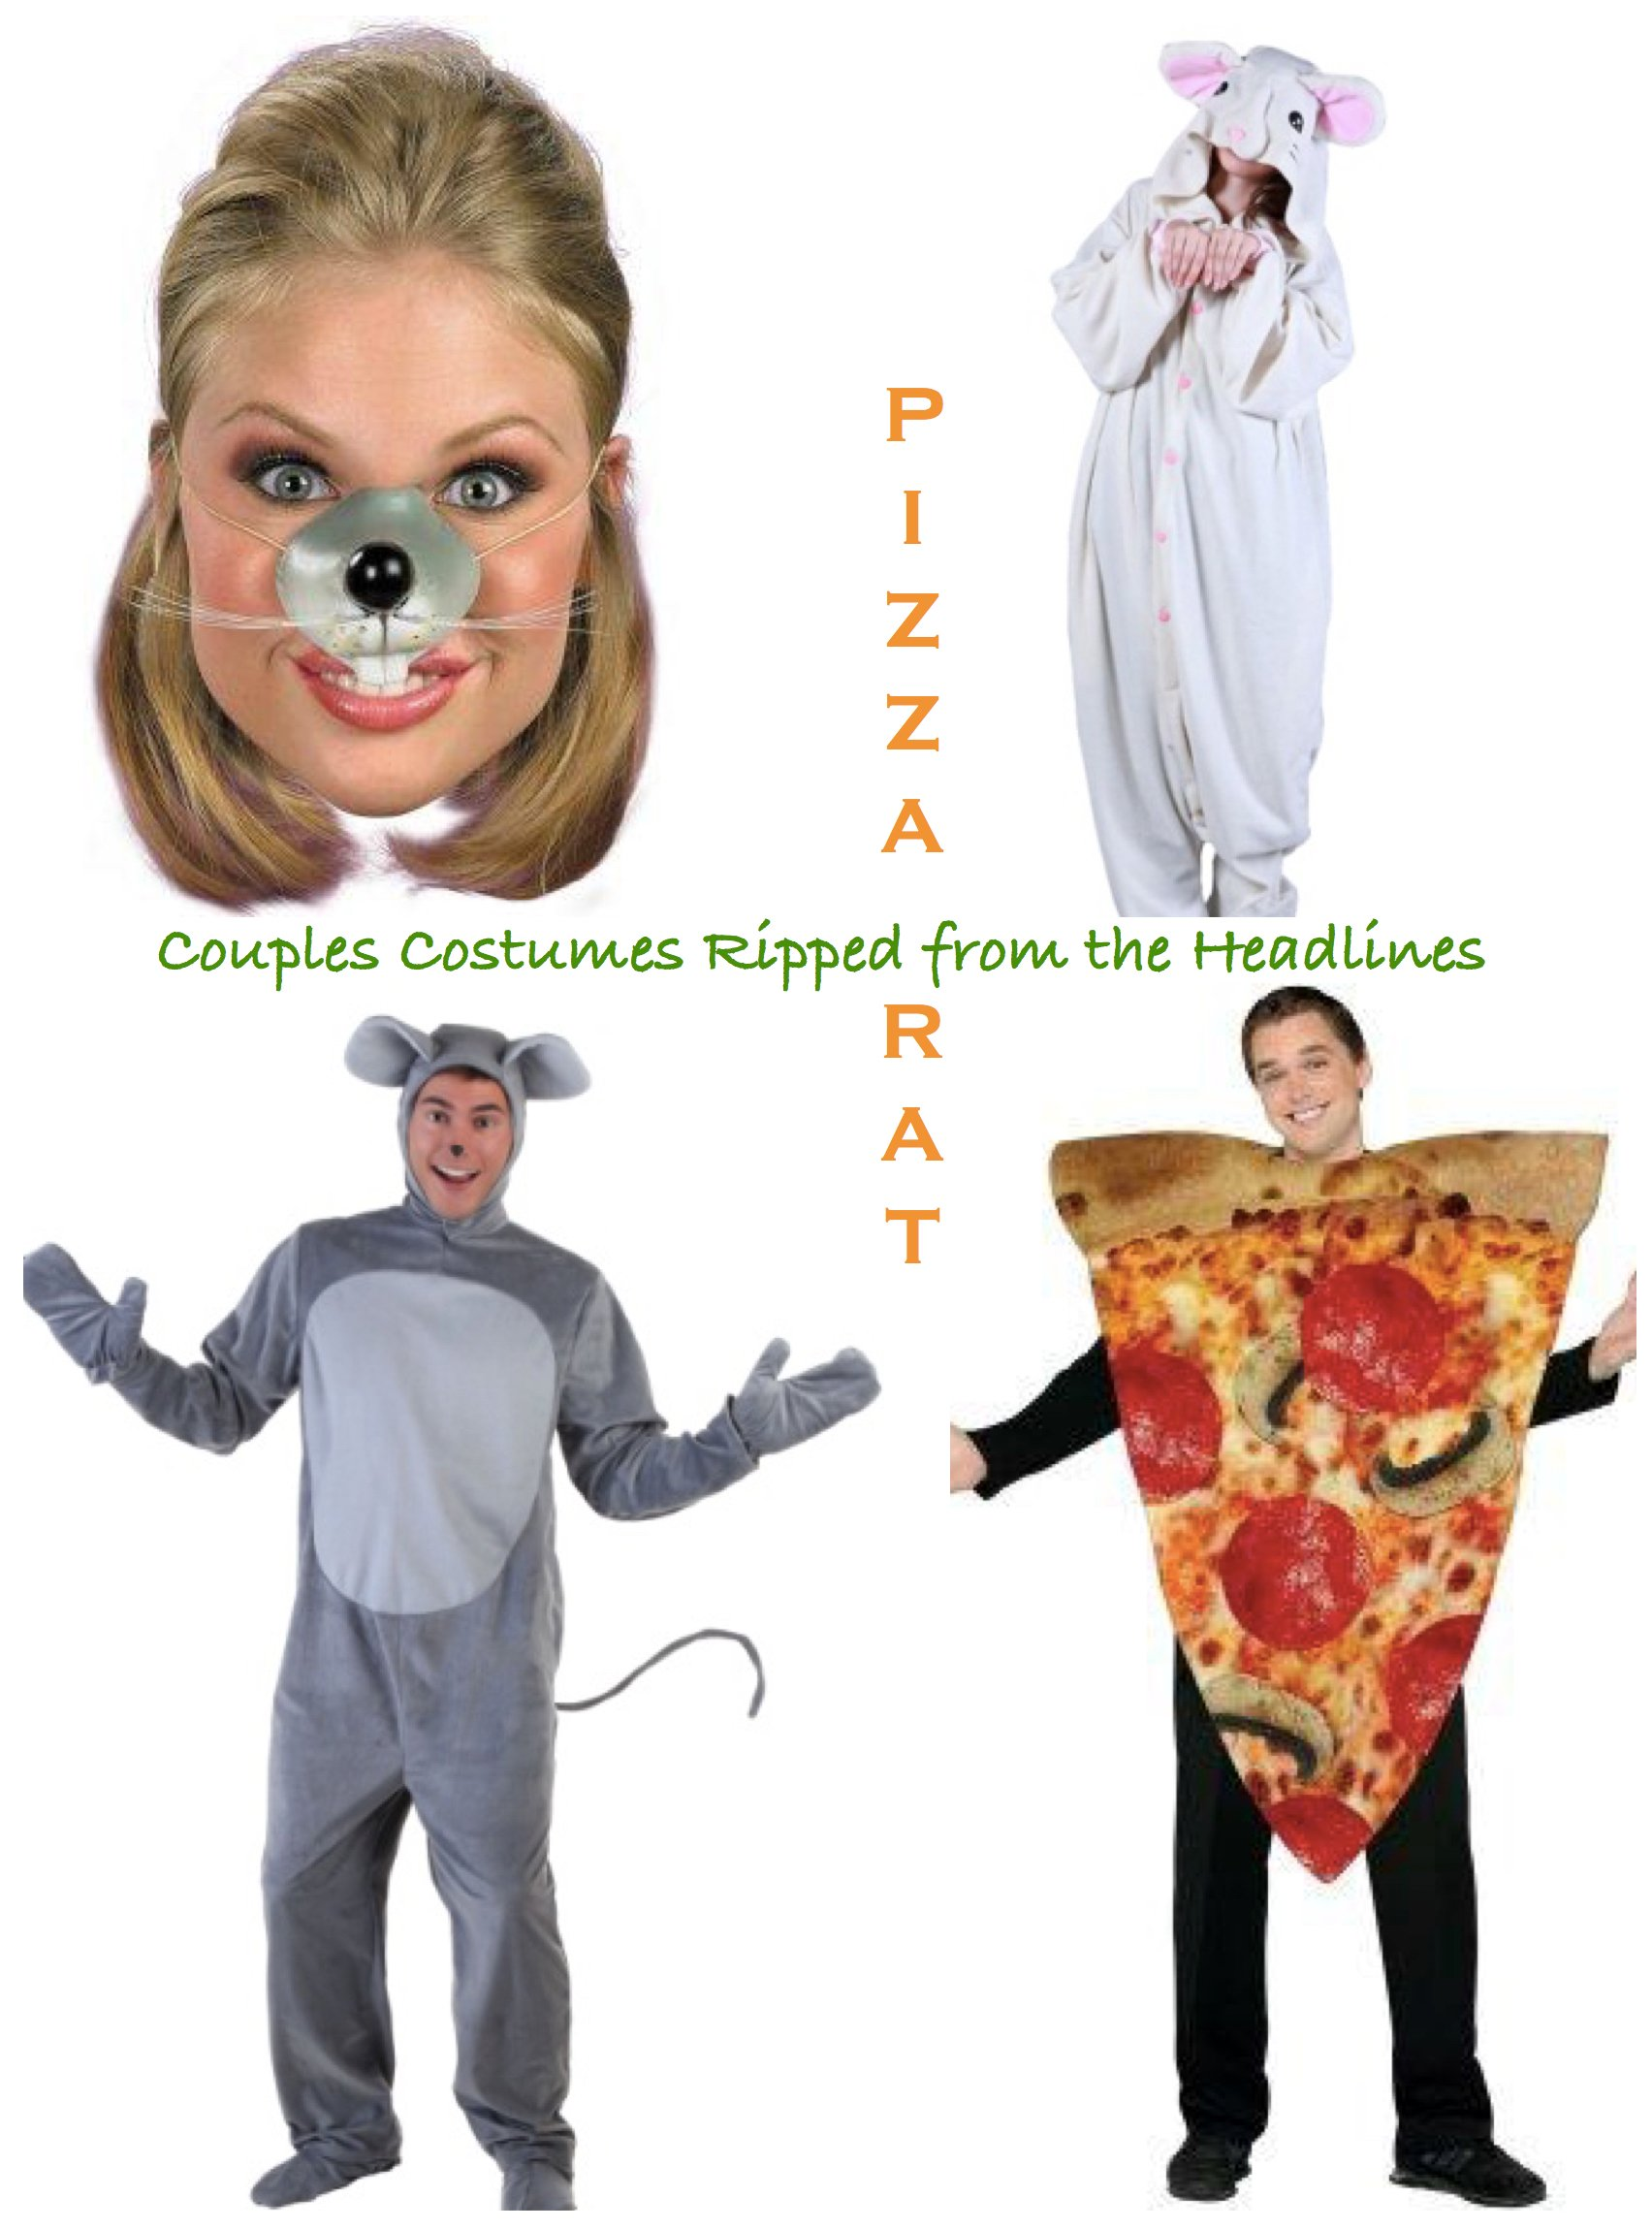 Couples Costumes Ripped from the Headlines Pizza Rat